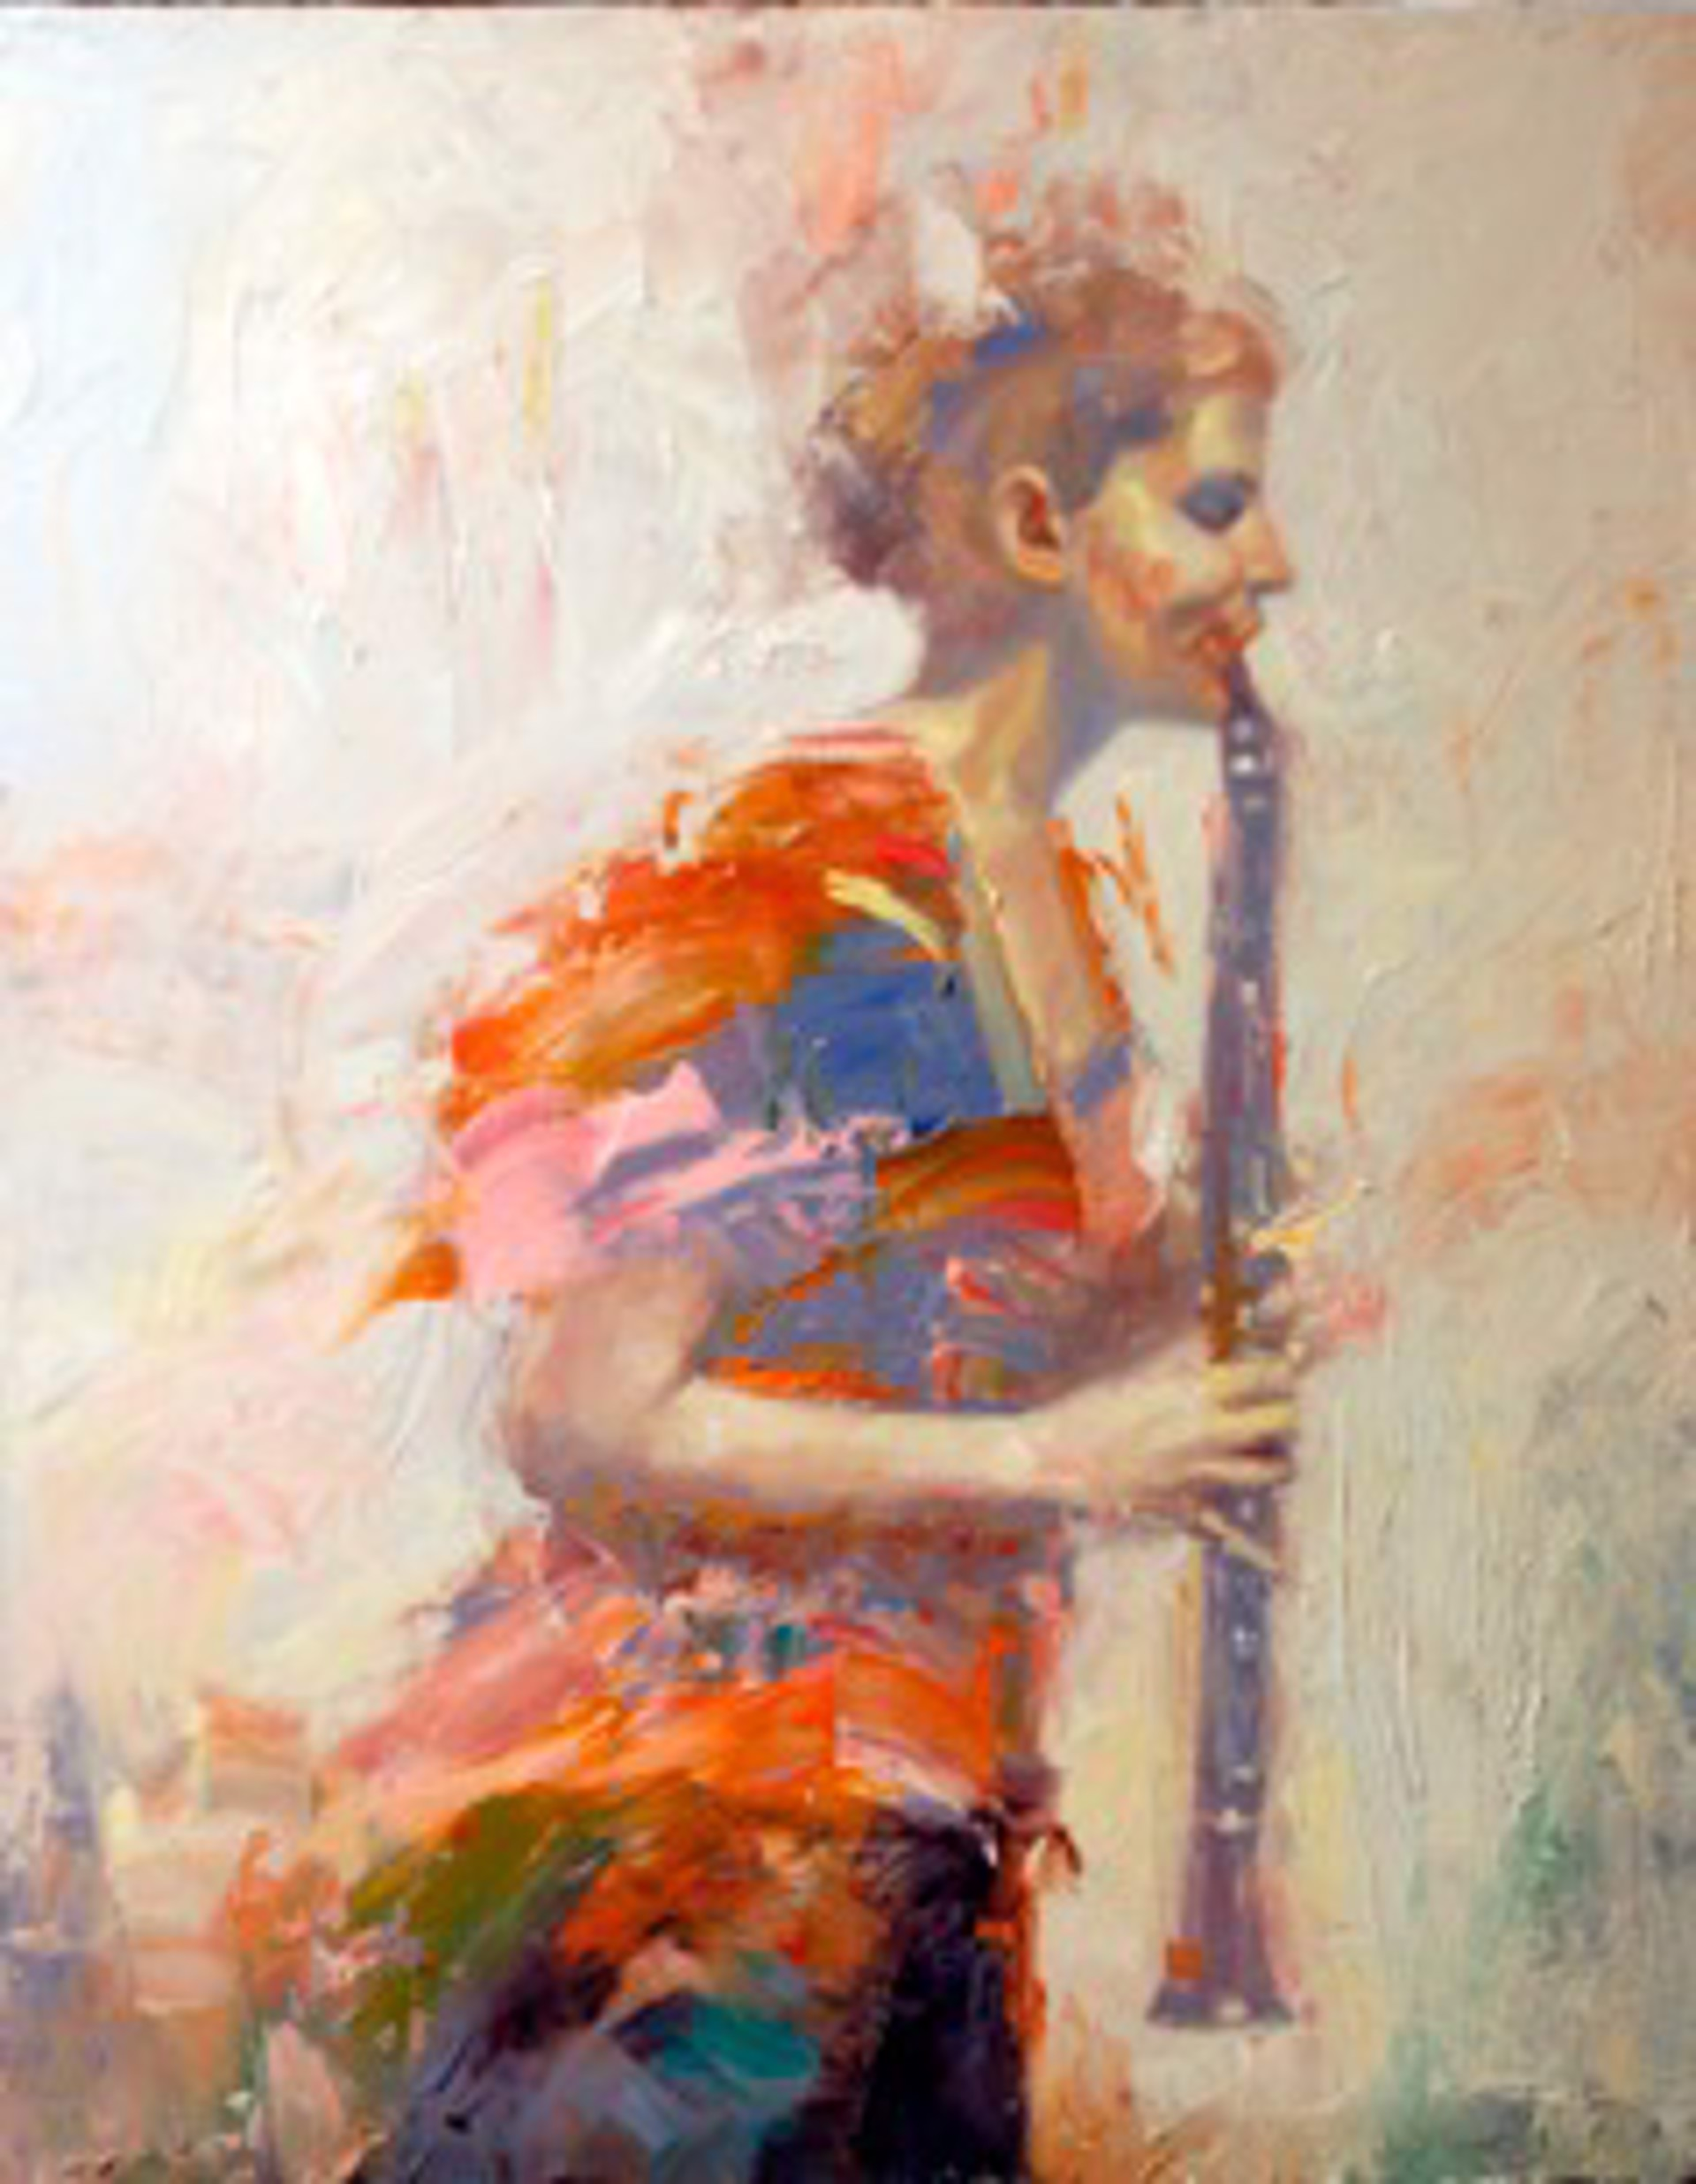 Clarinet Player by Chris Hopkins